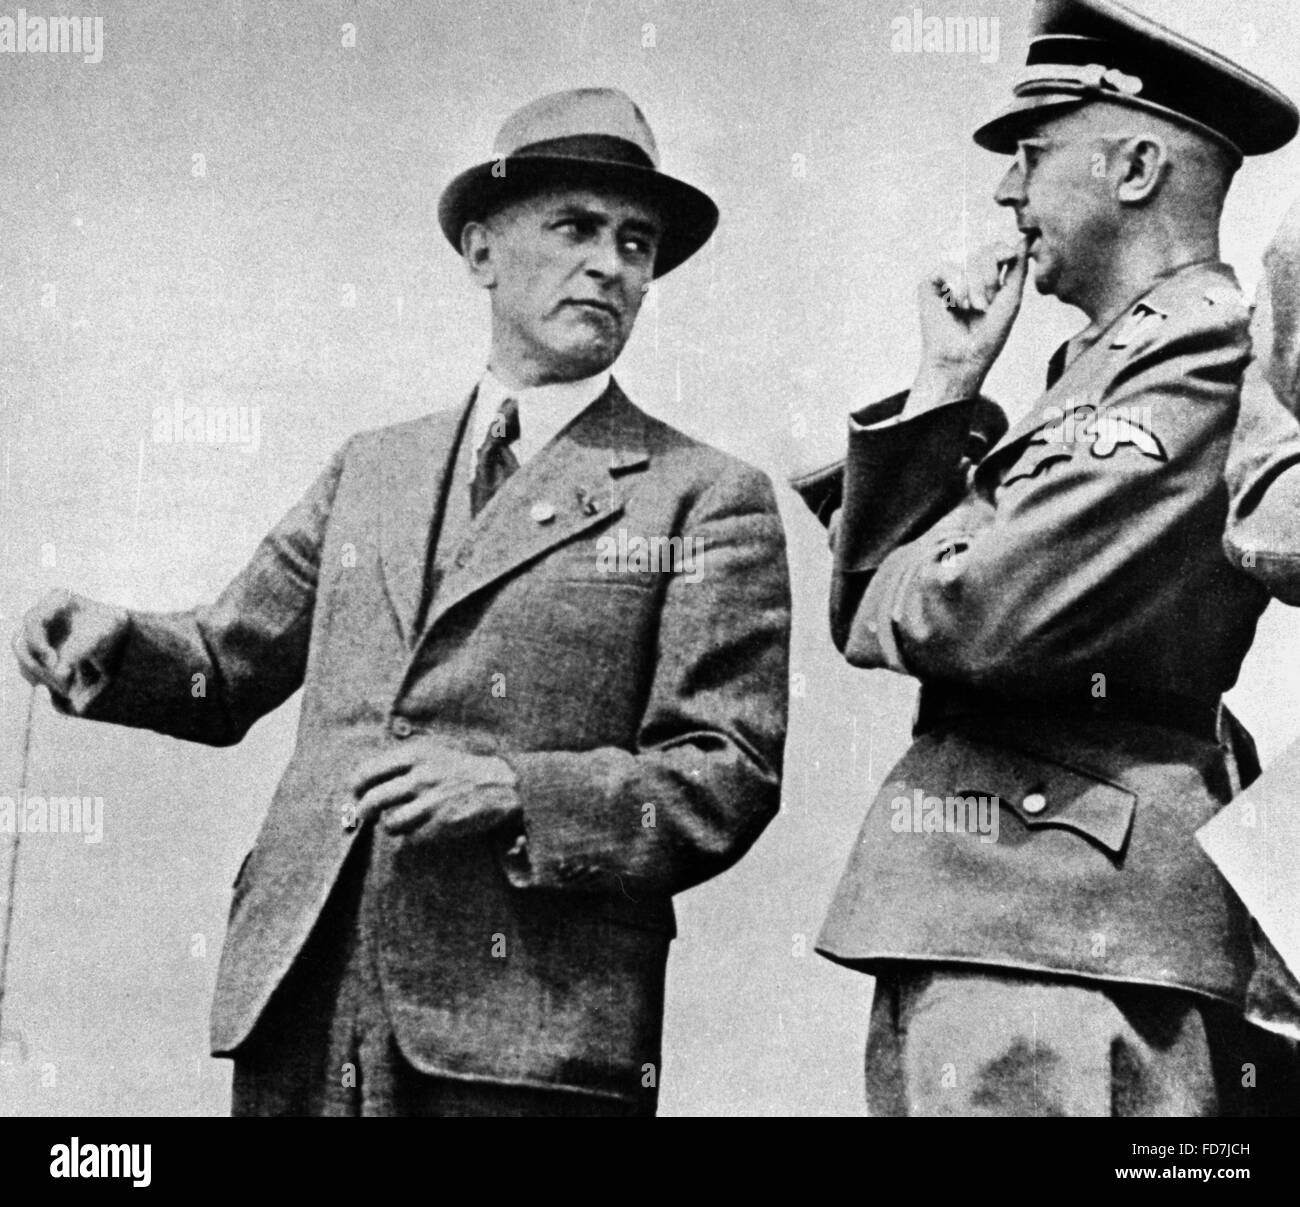 Max Faust and Heinrich Himmler in Auschwitz - Stock Image